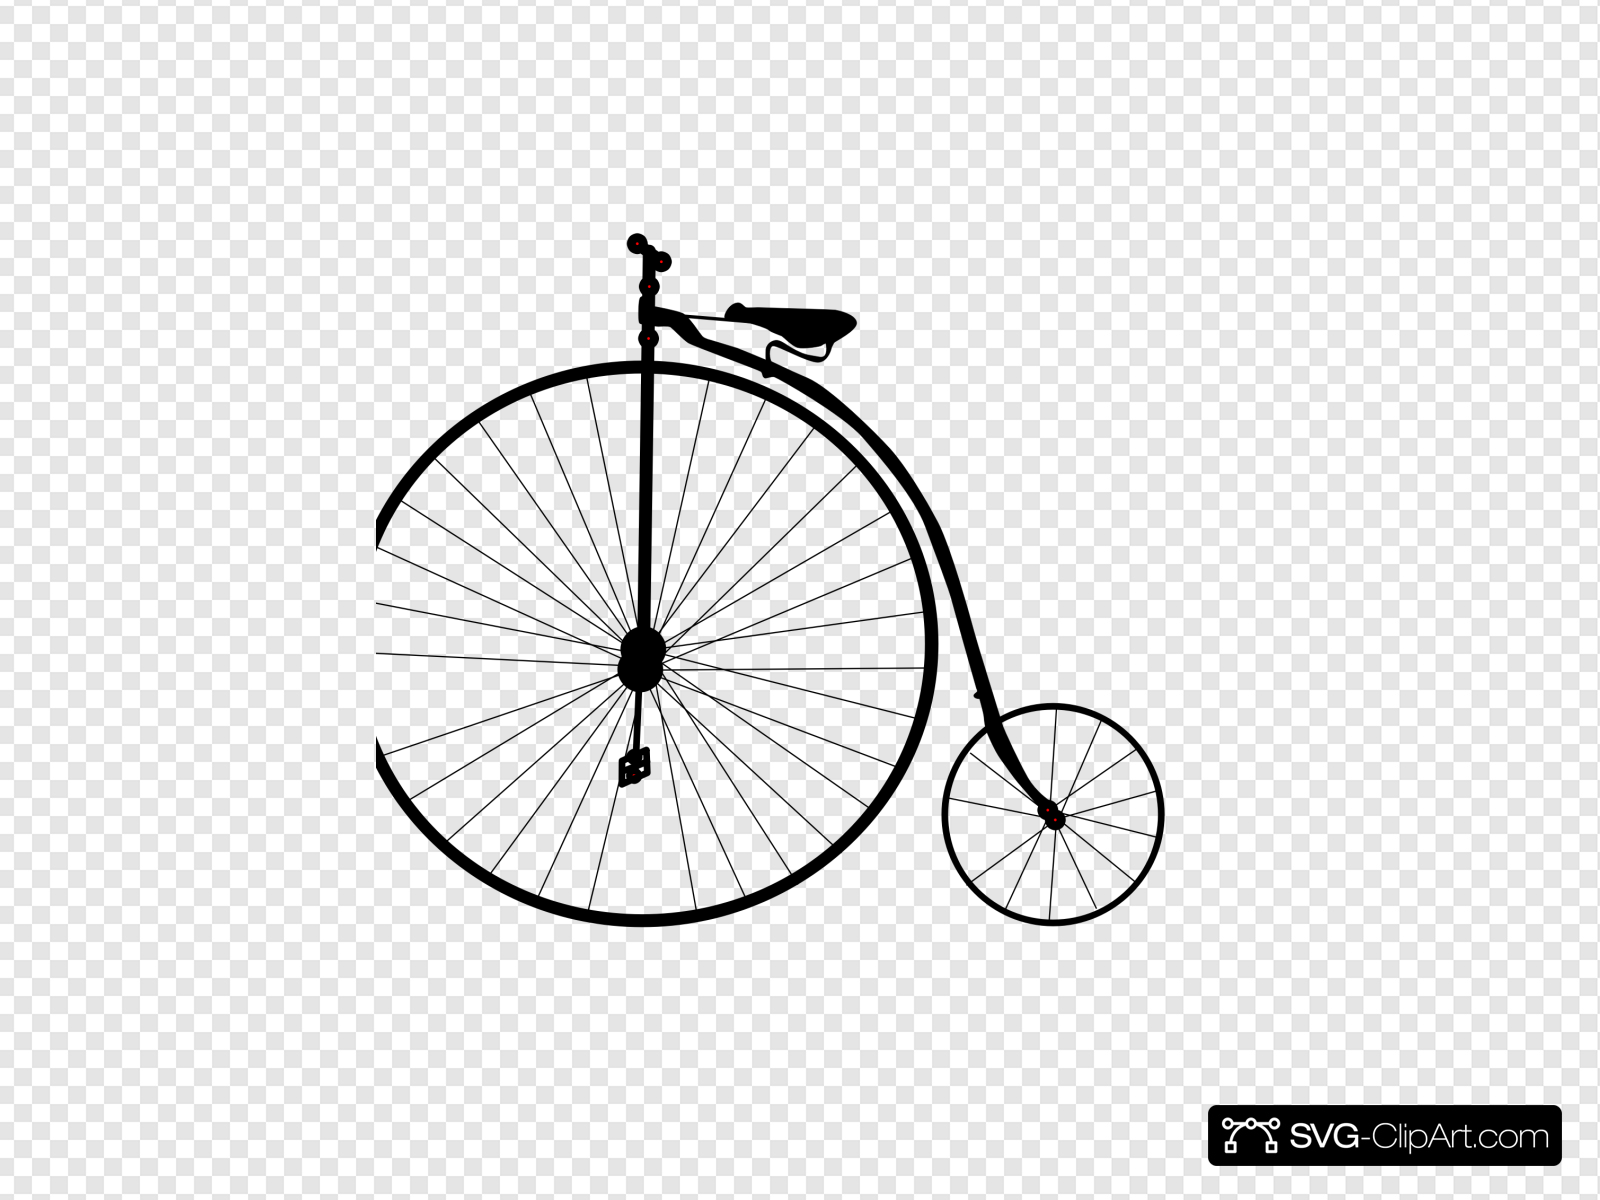 Bike Clip art, Icon and SVG.